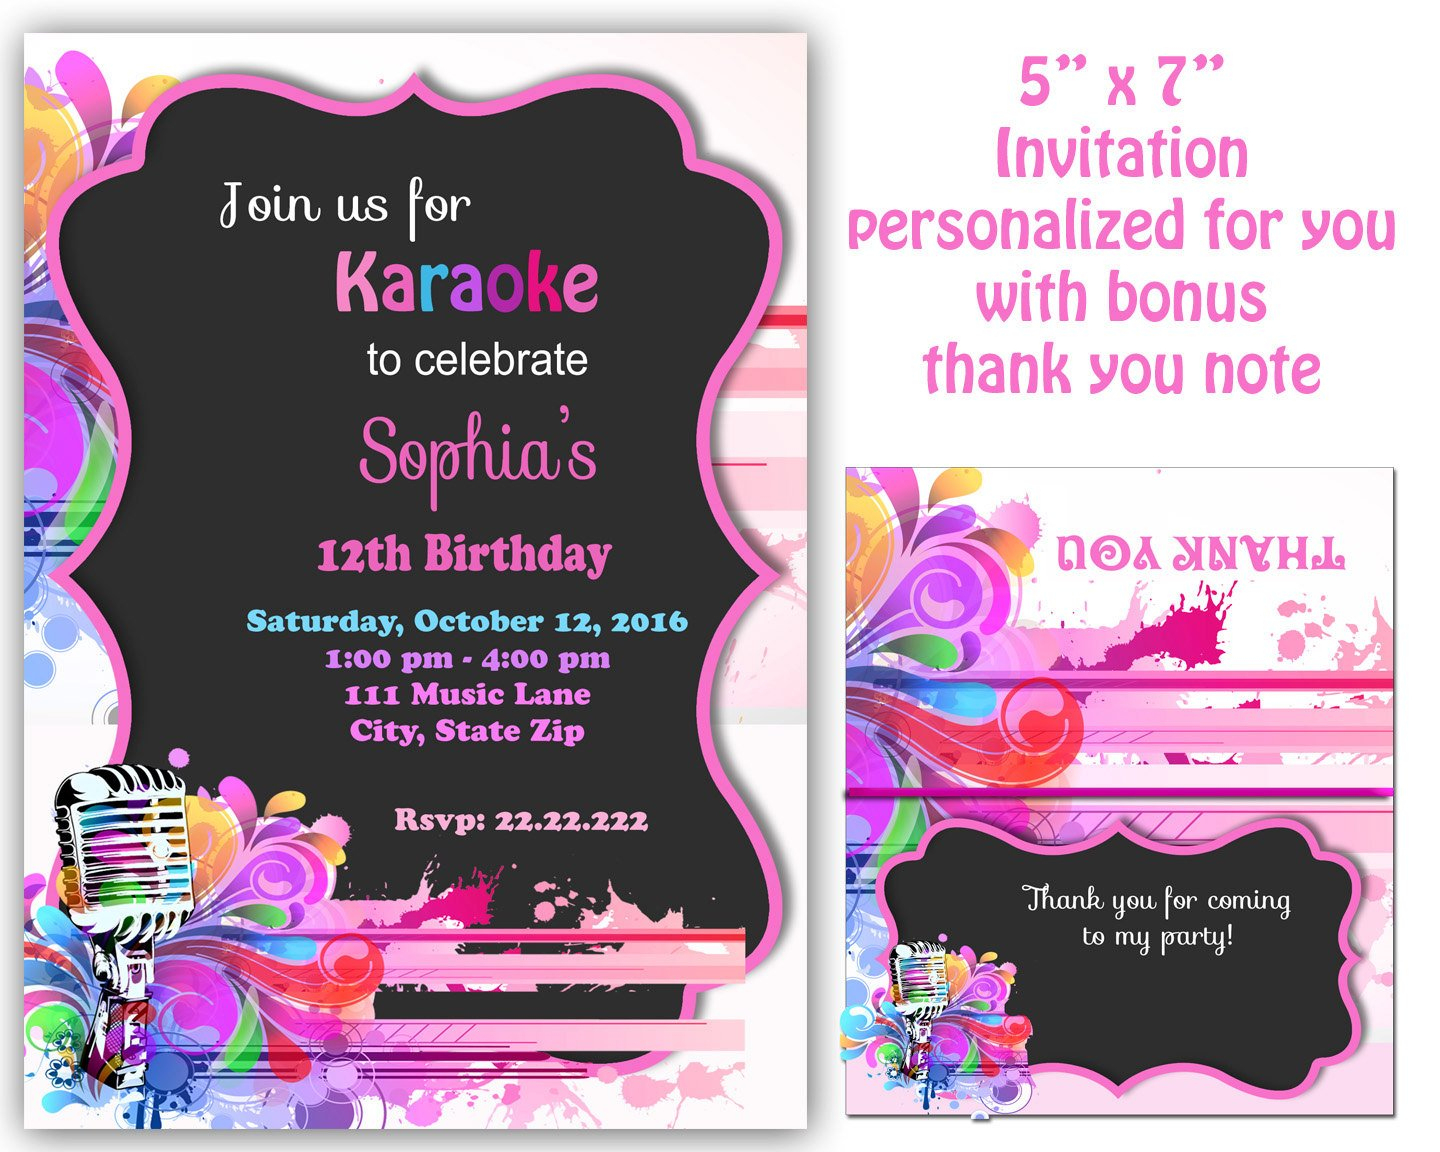 Karaoke Invitation Karaoke Party Invitation Karaoke | Etsy - Free Printable Karaoke Party Invitations